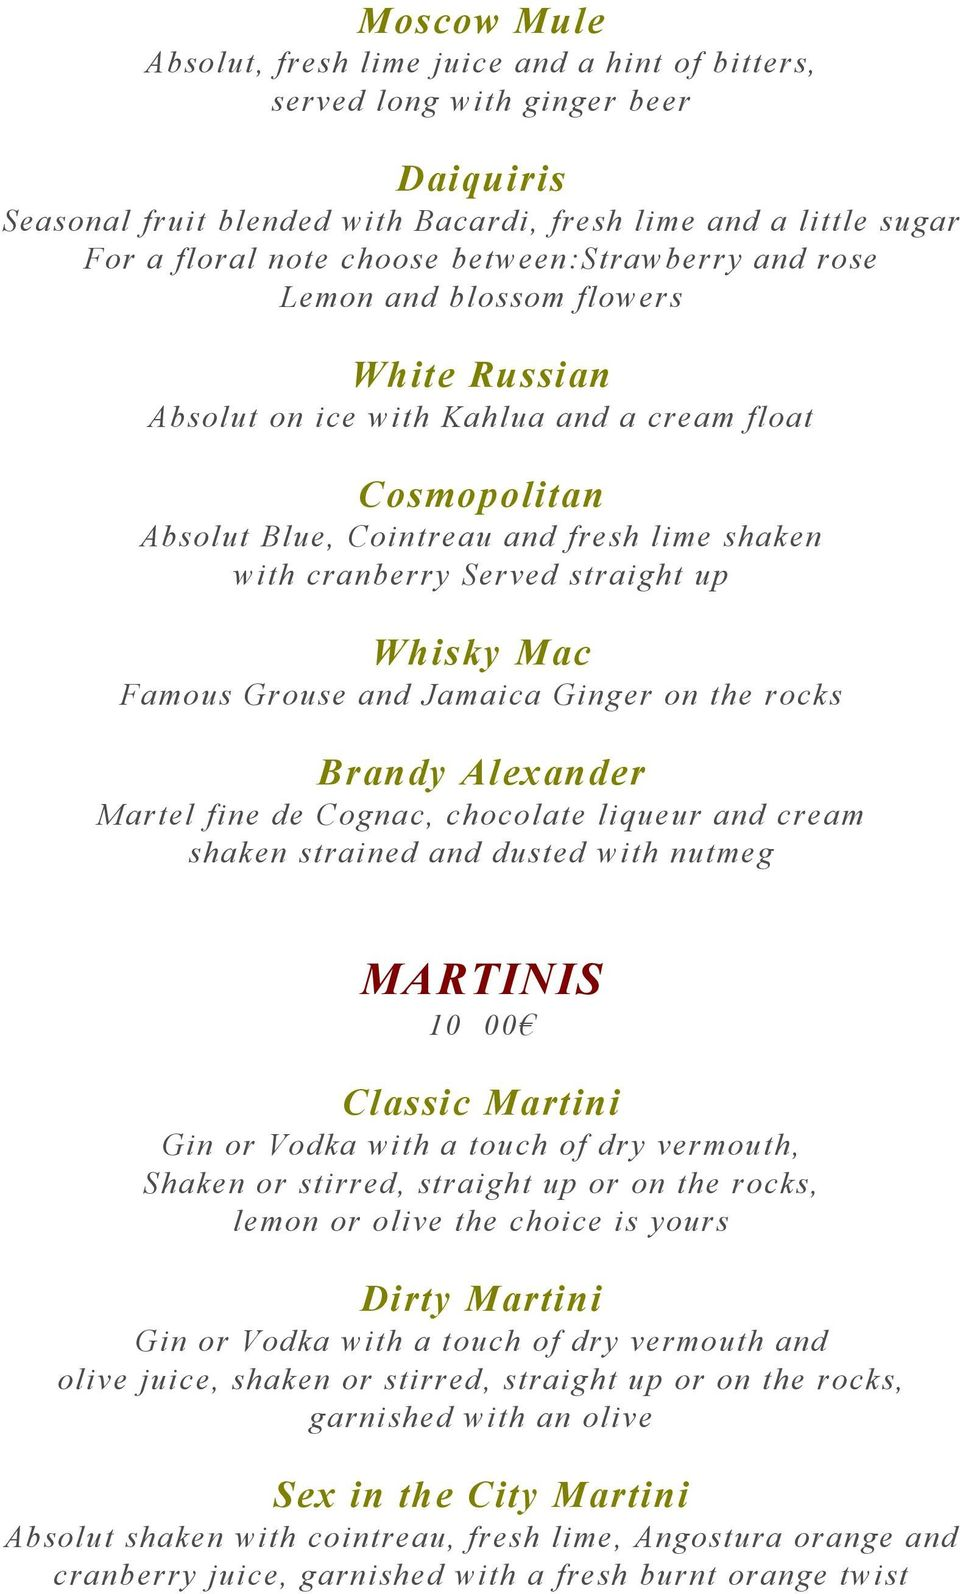 straight up Whisky Mac Famous Grouse and Jamaica Ginger on the rocks Brandy Alexander Martel fine de Cognac, chocolate liqueur and cream shaken strained and dusted with nutmeg MARTINIS 10 00 Classic